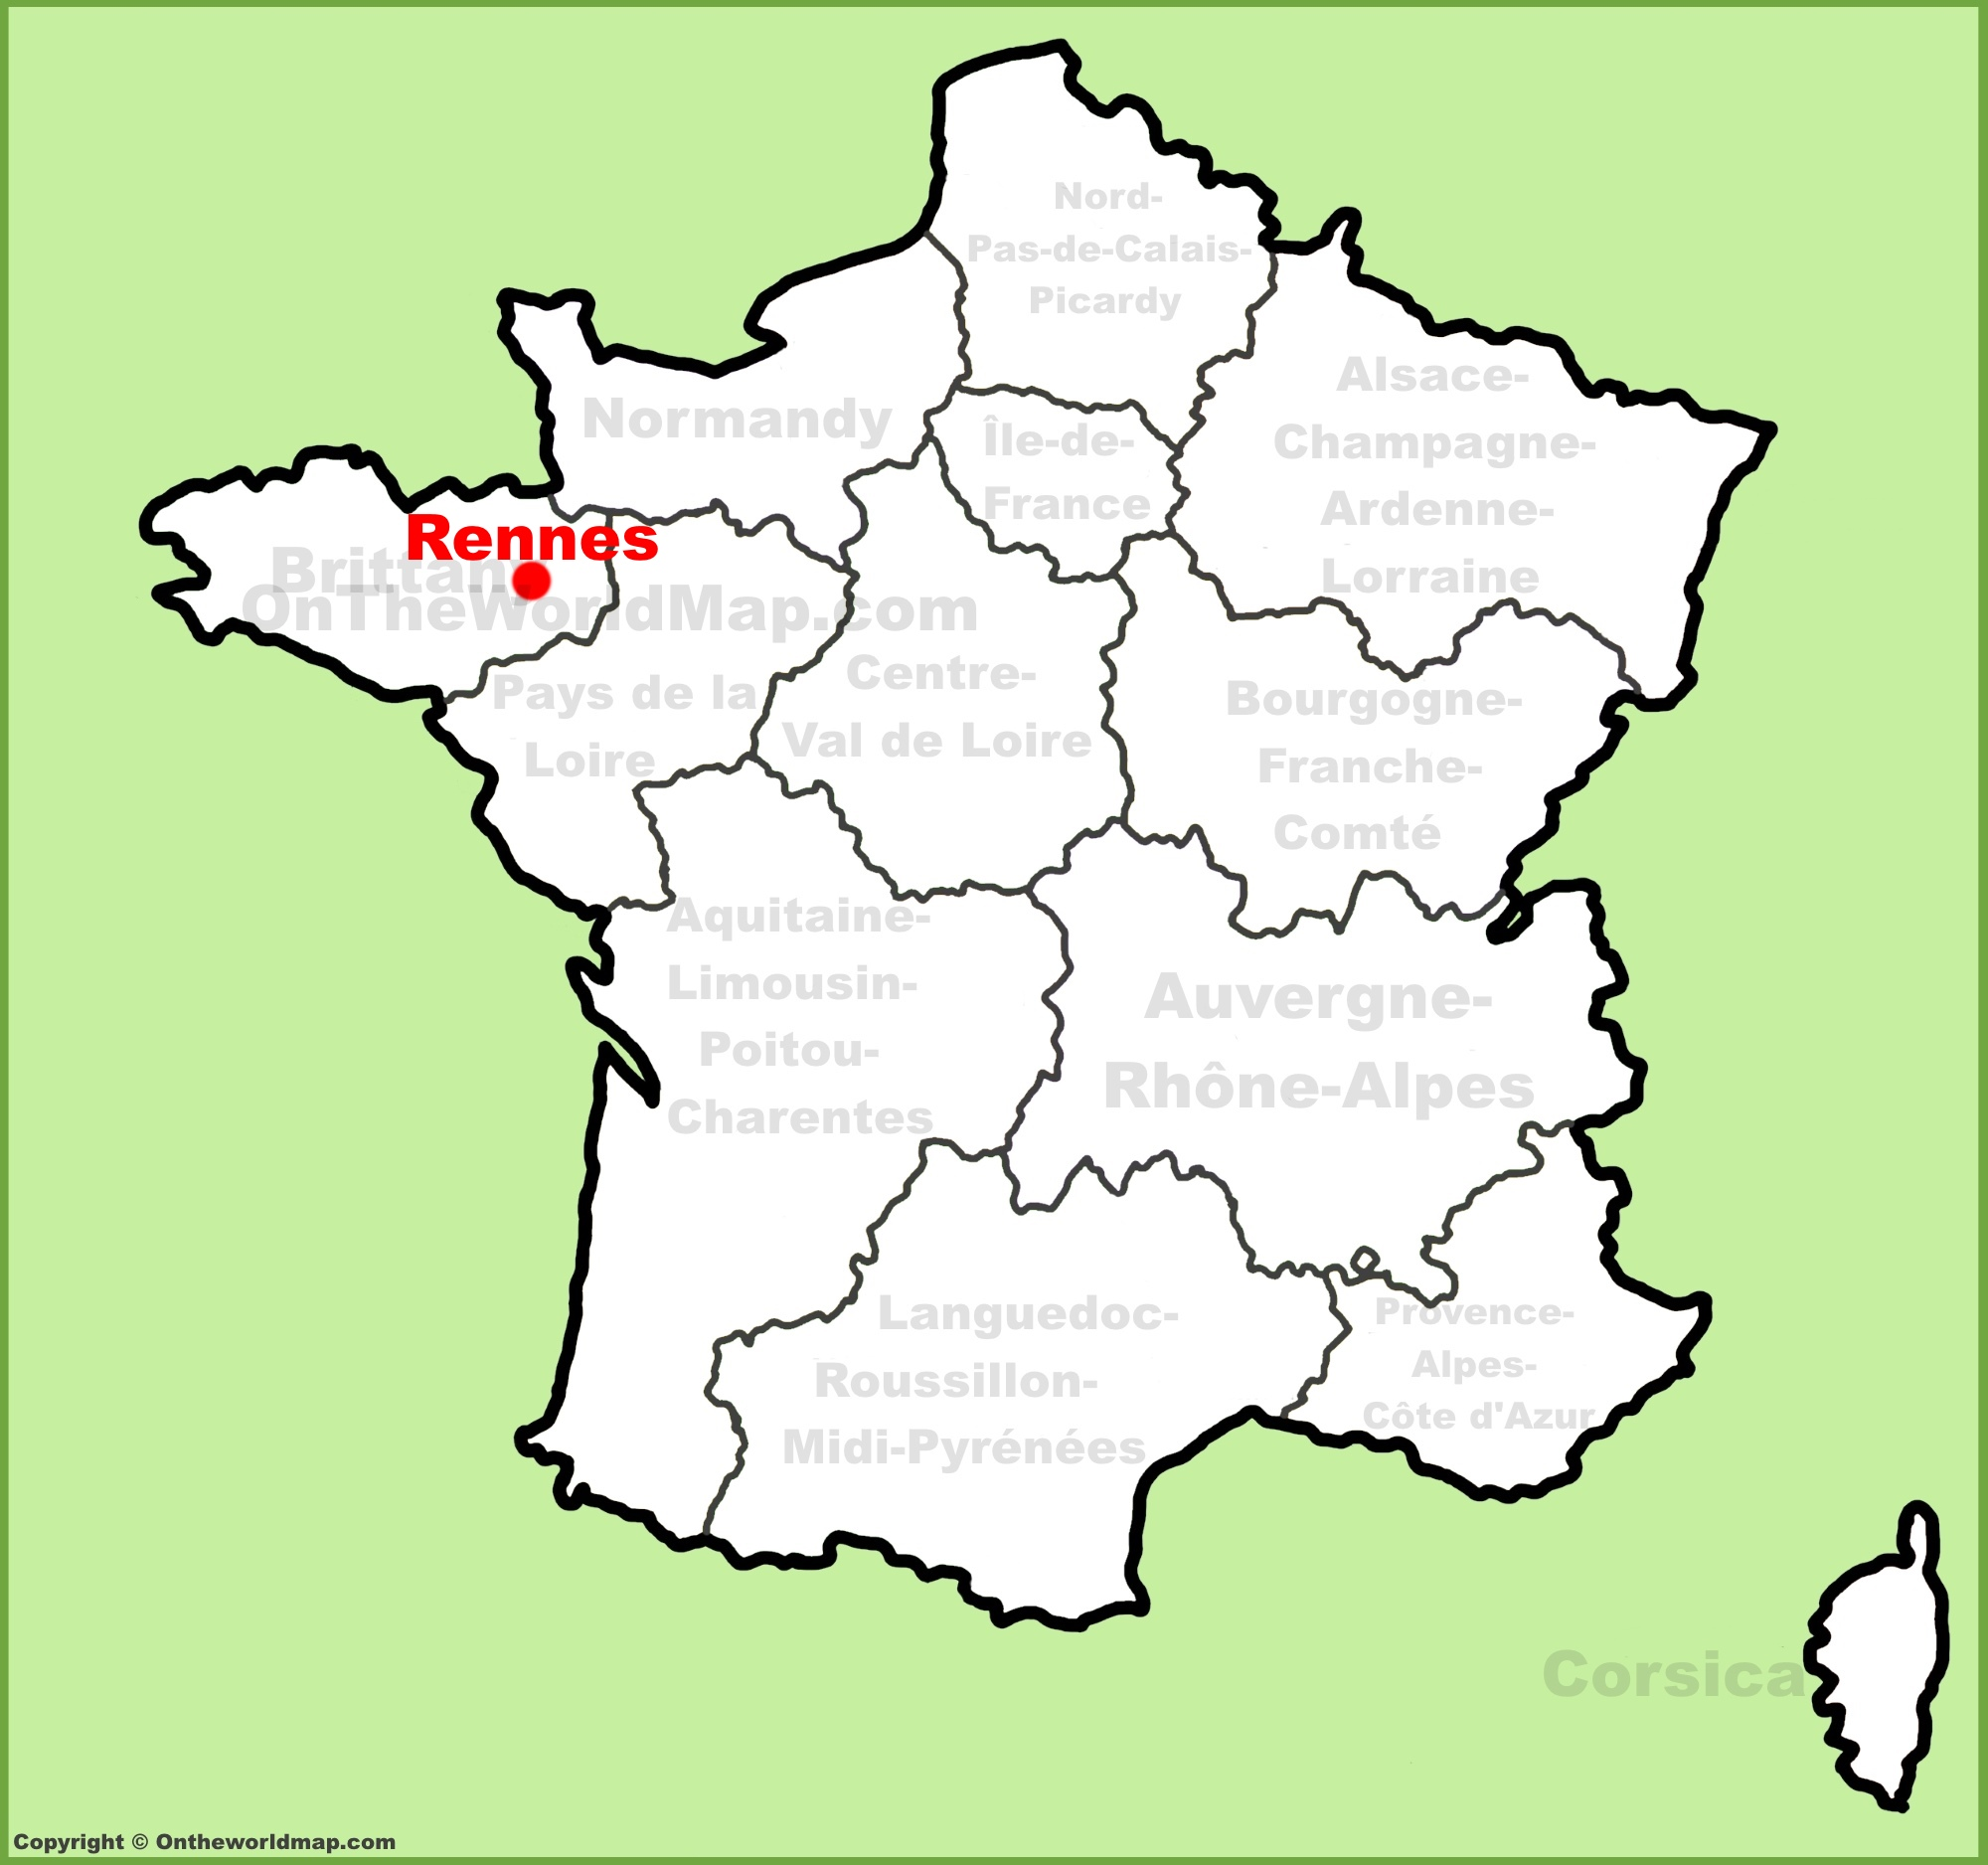 The Map Of France With The City.Rennes Location On The France Map